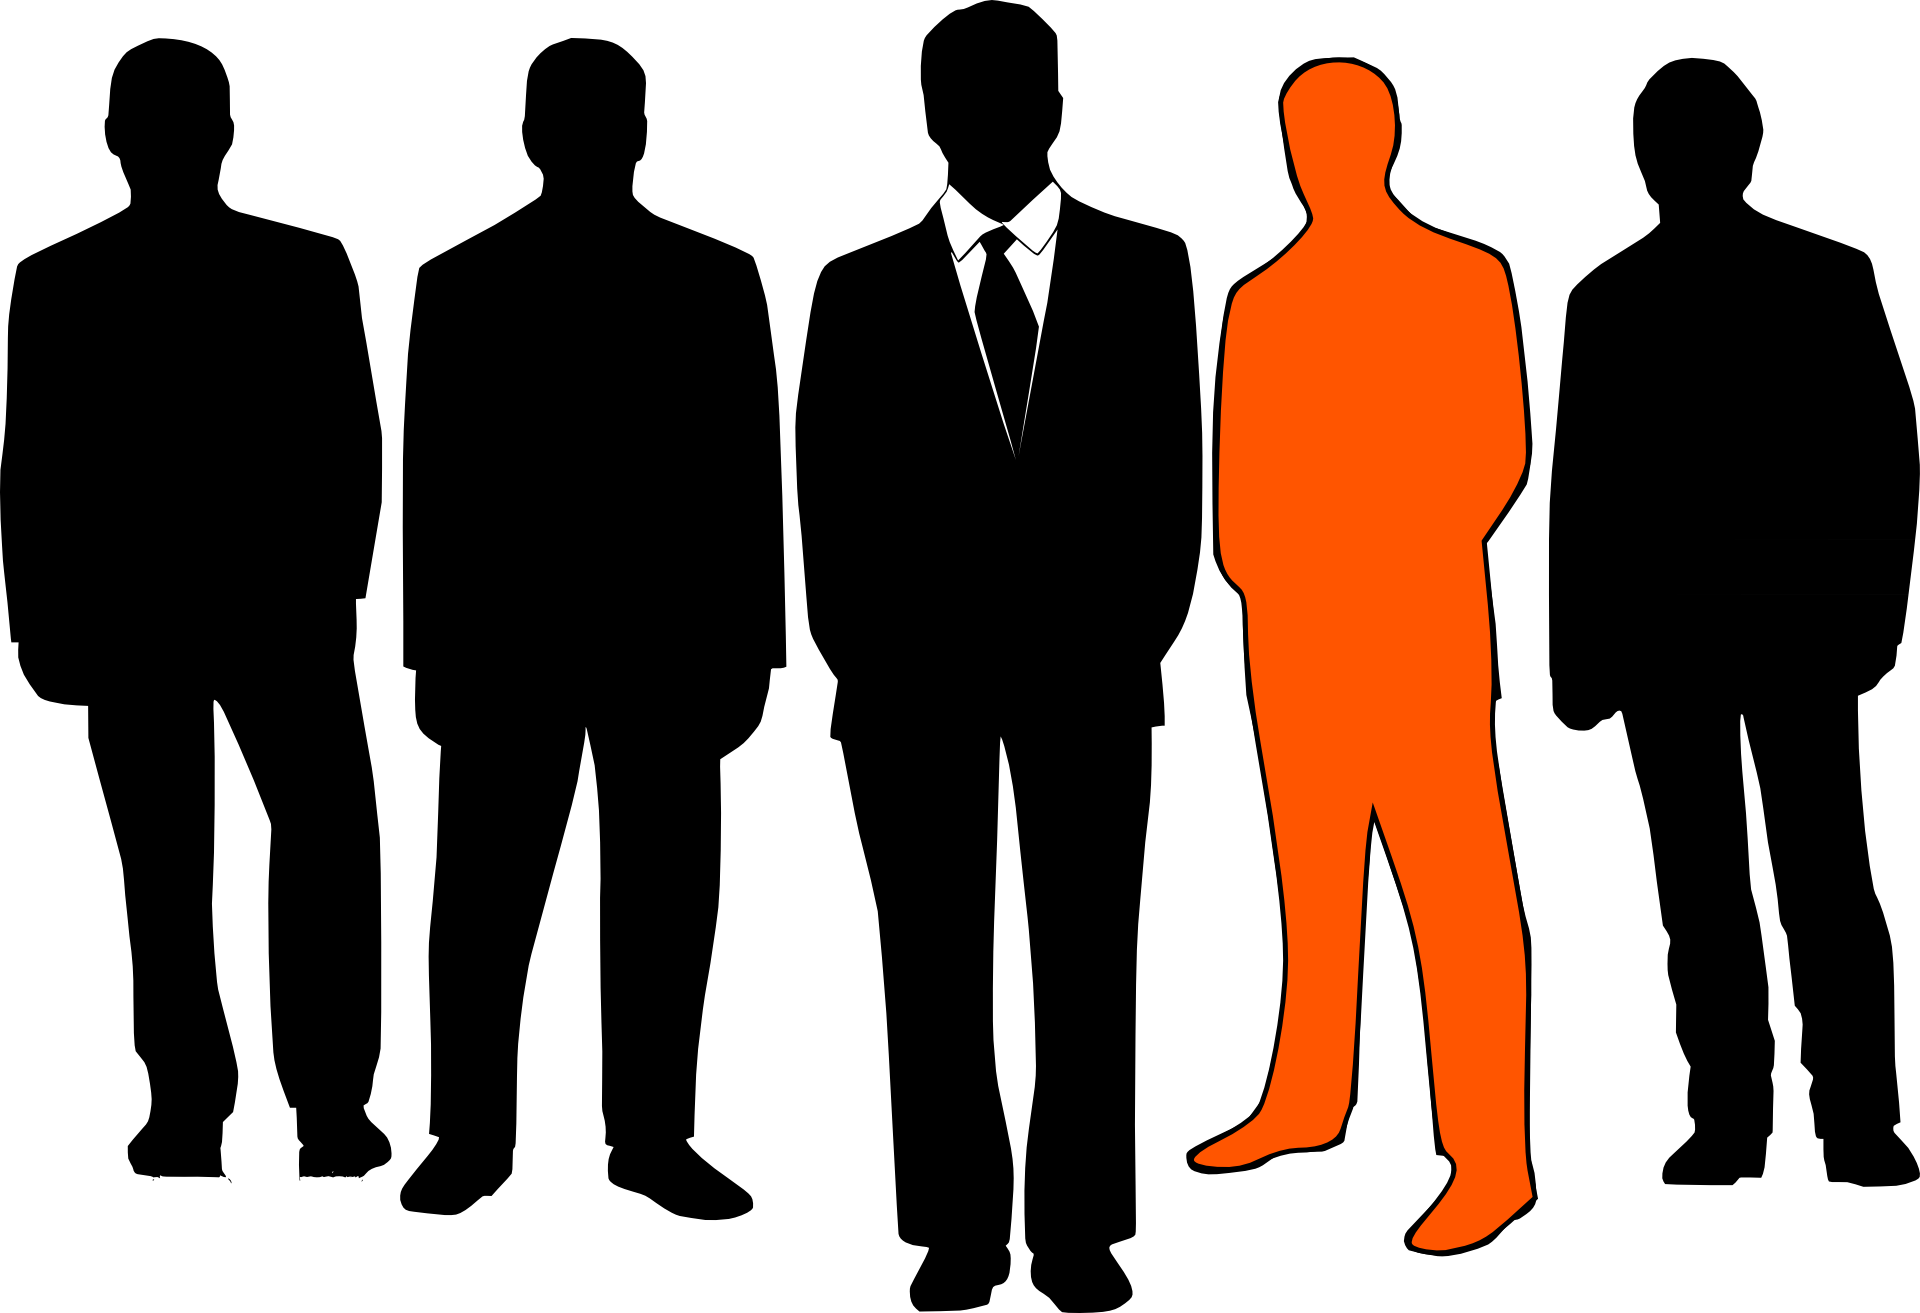 The picture represents a group of people which are drawn in black and one of them drawn in orange, The orange person represents the leader.